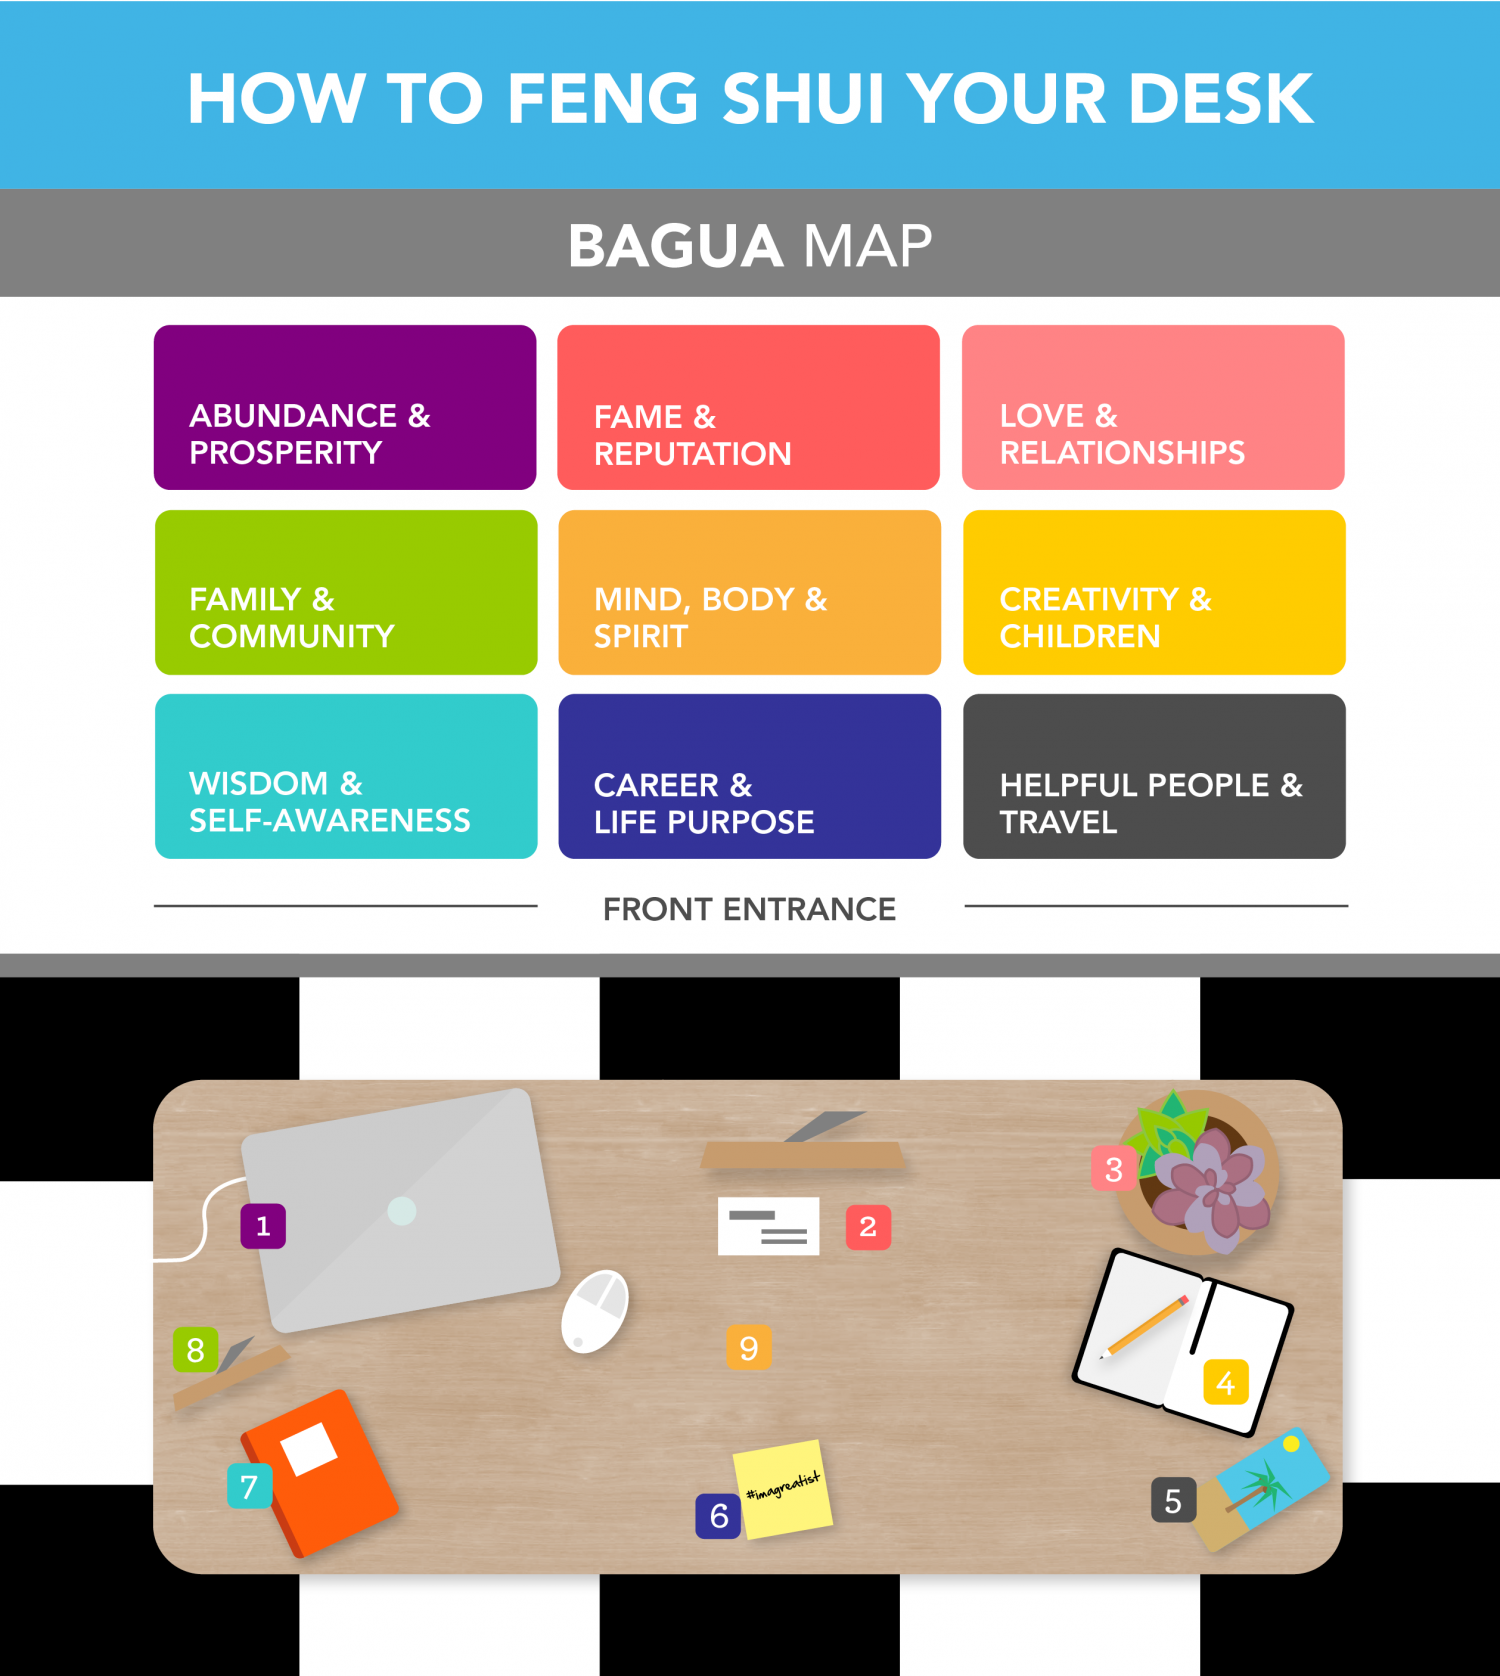 Feng shui the ultimate guide to designing your desk for - Desk in bedroom feng shui ...